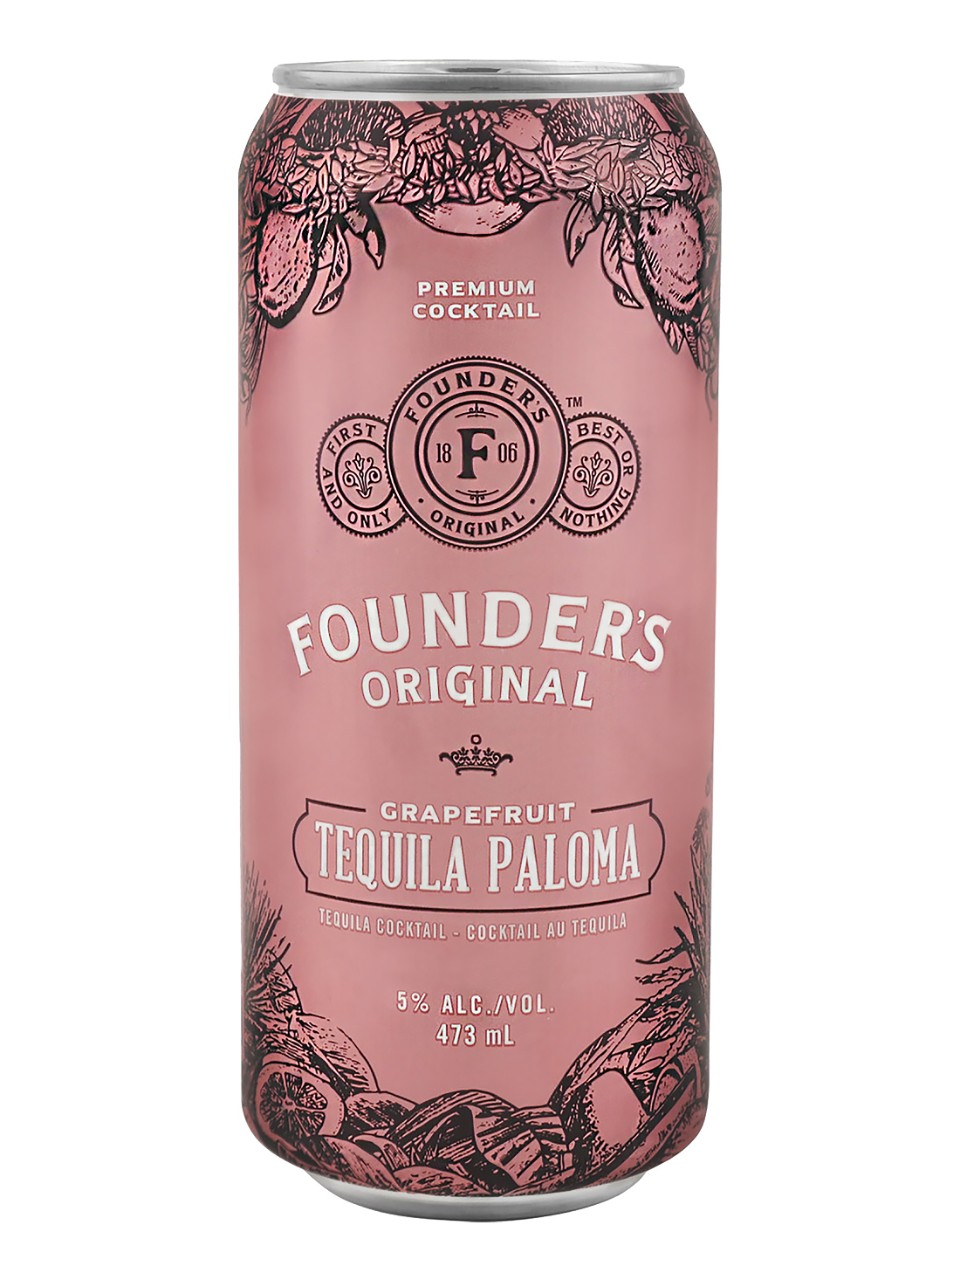 Founder's Original Tequila Paloma from LCBO